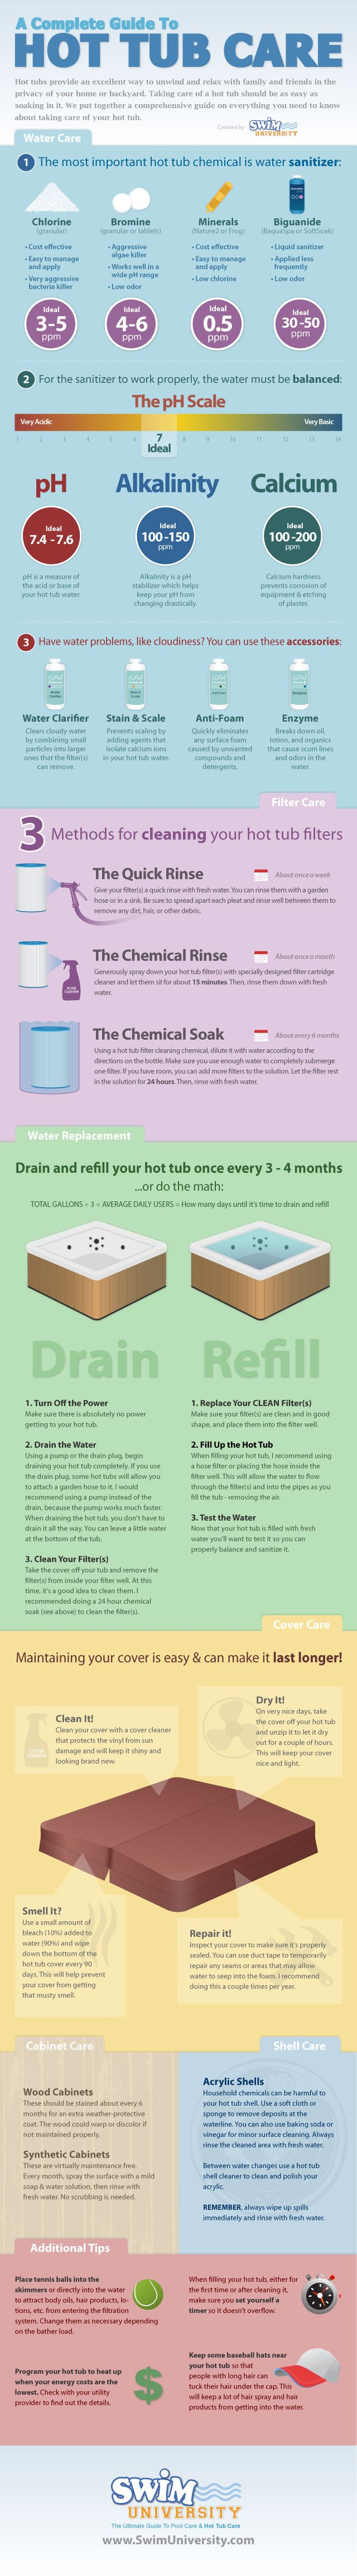 Hot tub spa care infographic. Simple guide to taking care of the tub.